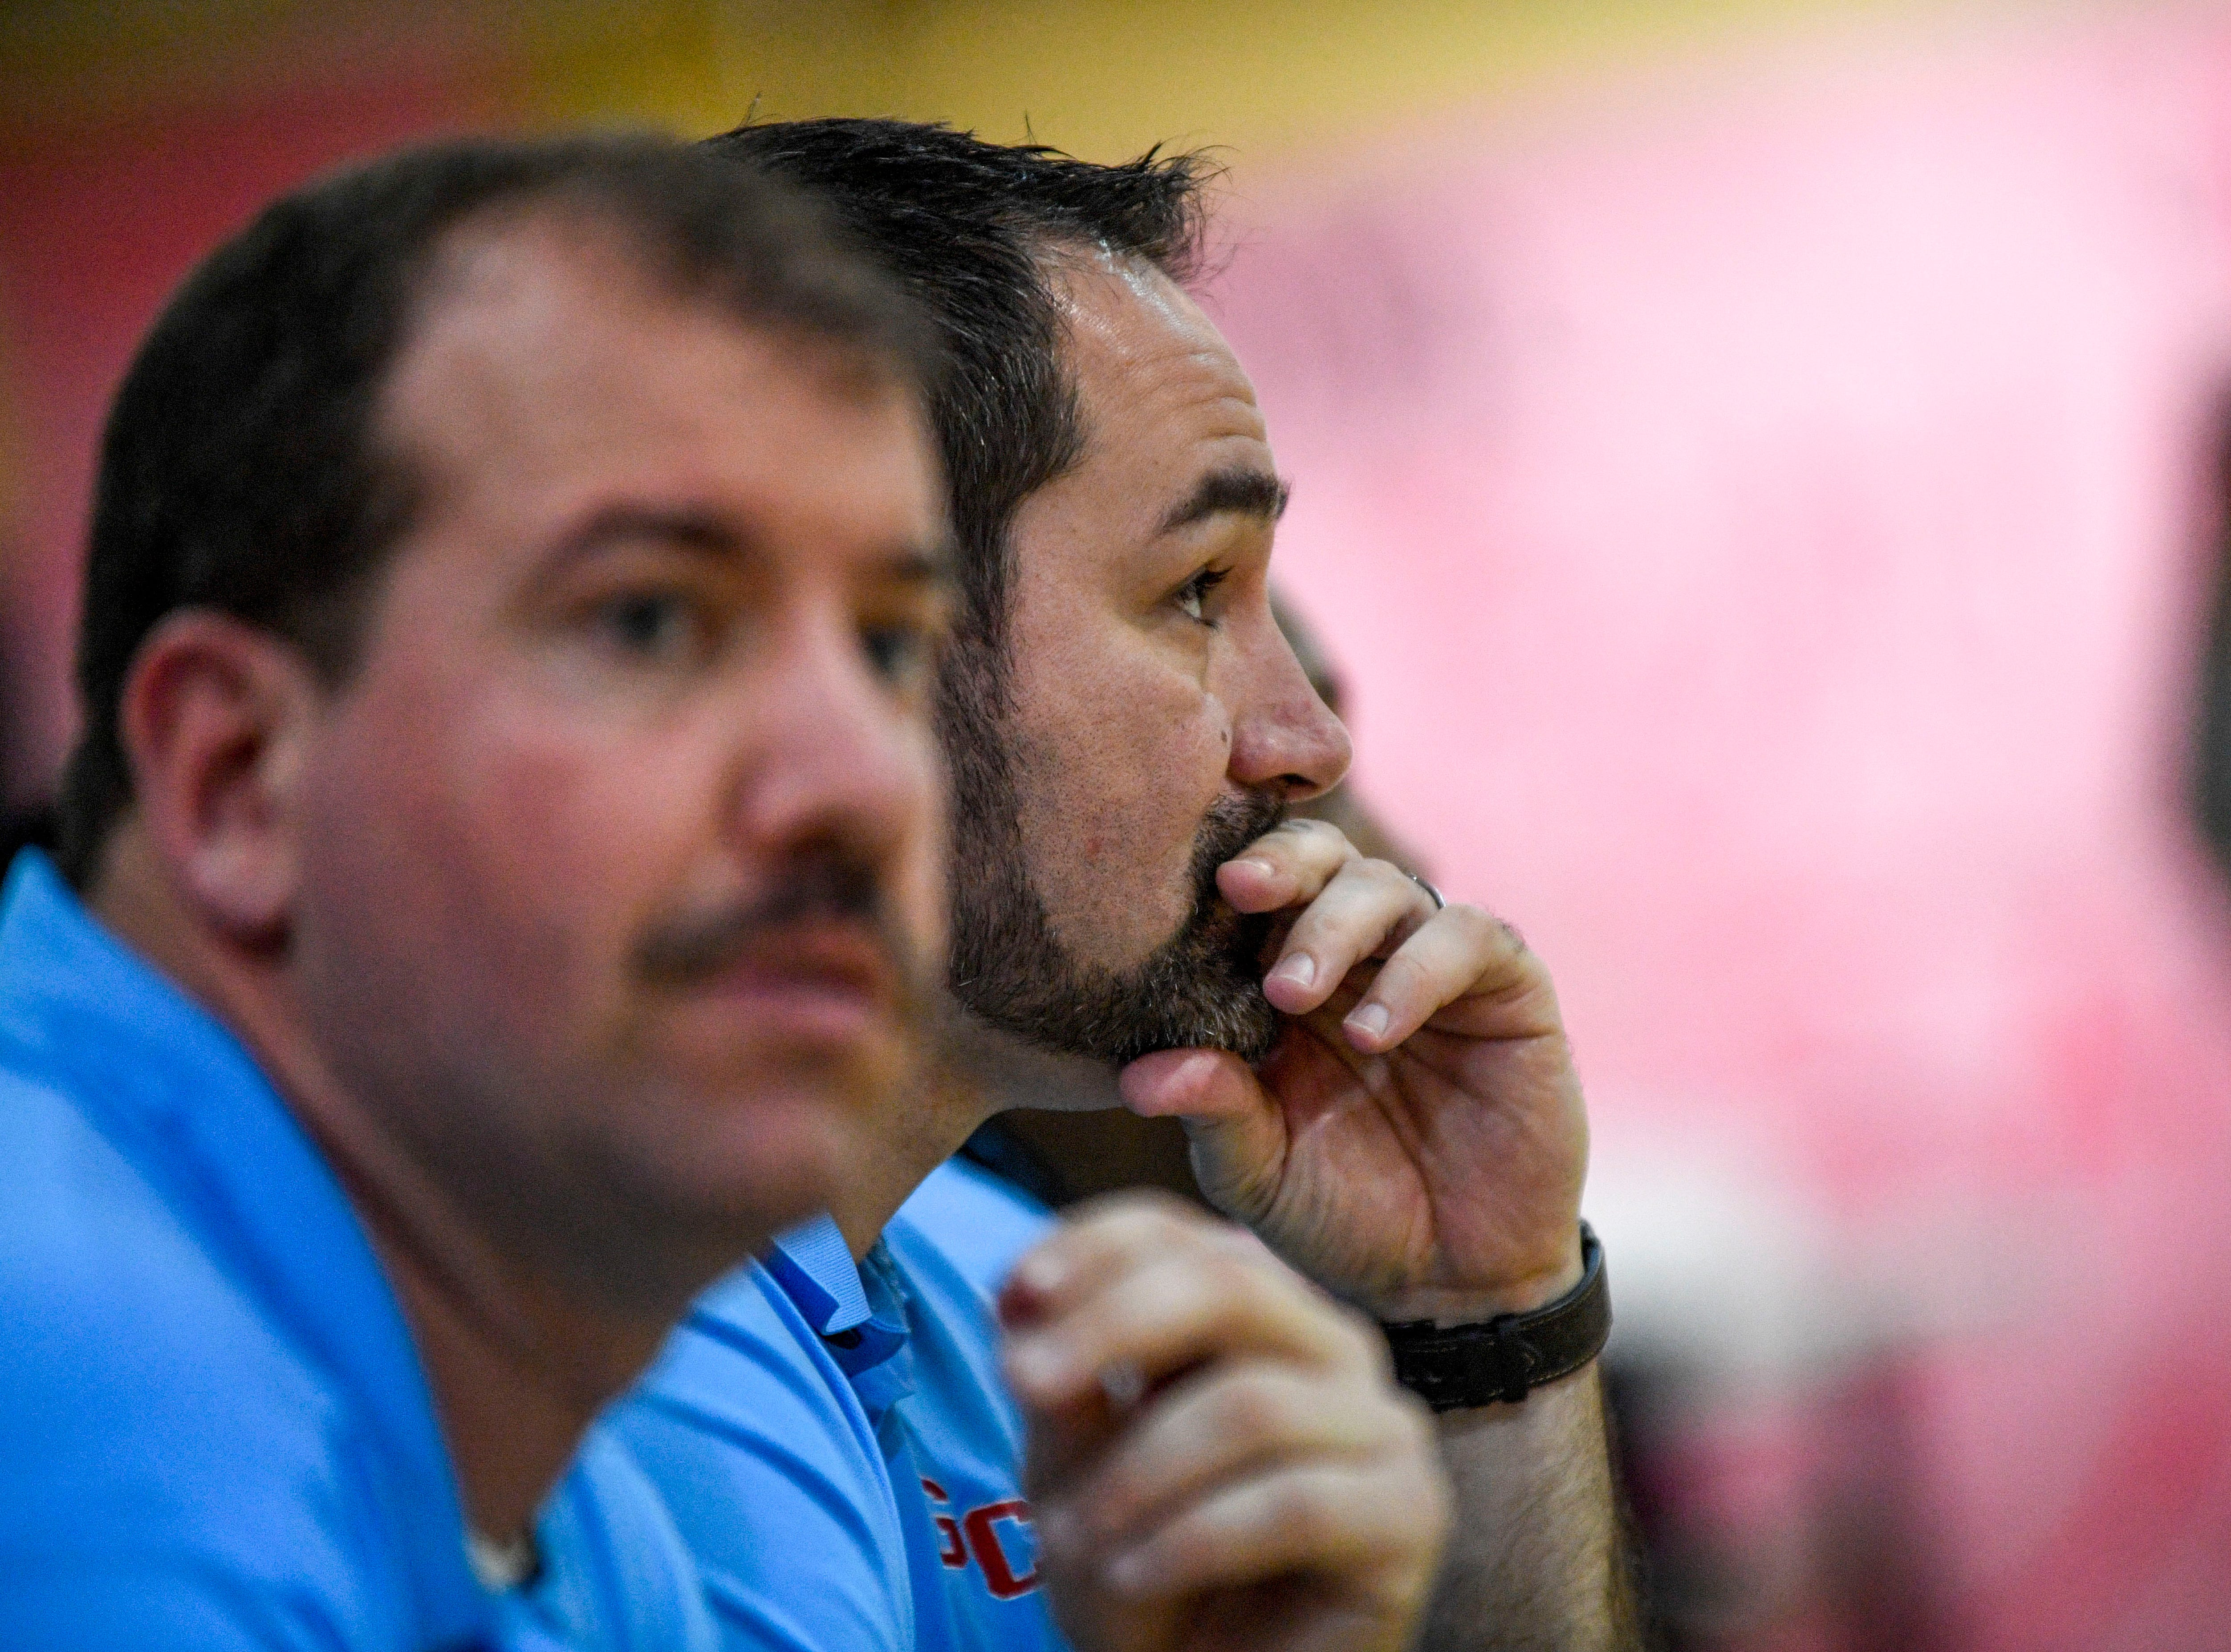 Gibson County head coach Justin Lowery watches his team from the bench in a TSSAA basketball game between Peabody and Gibson County at Peabody High School in Trenton, Tenn., on Friday, Feb. 8, 2019.